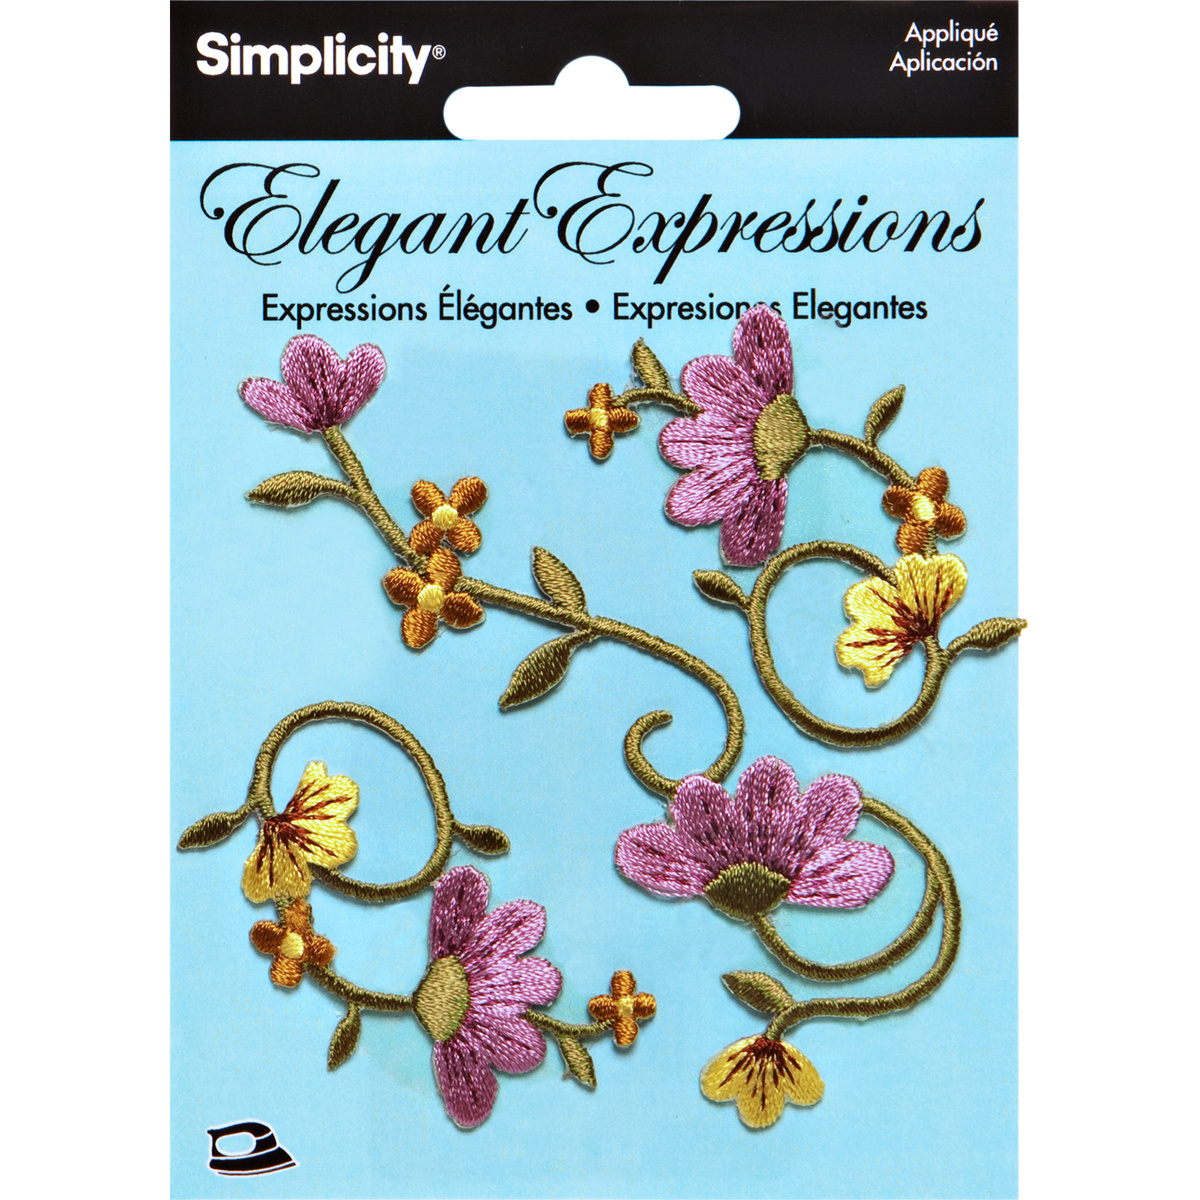 Elegant Expressions Embroidery Iron On Vine Appliques, 3 pcs